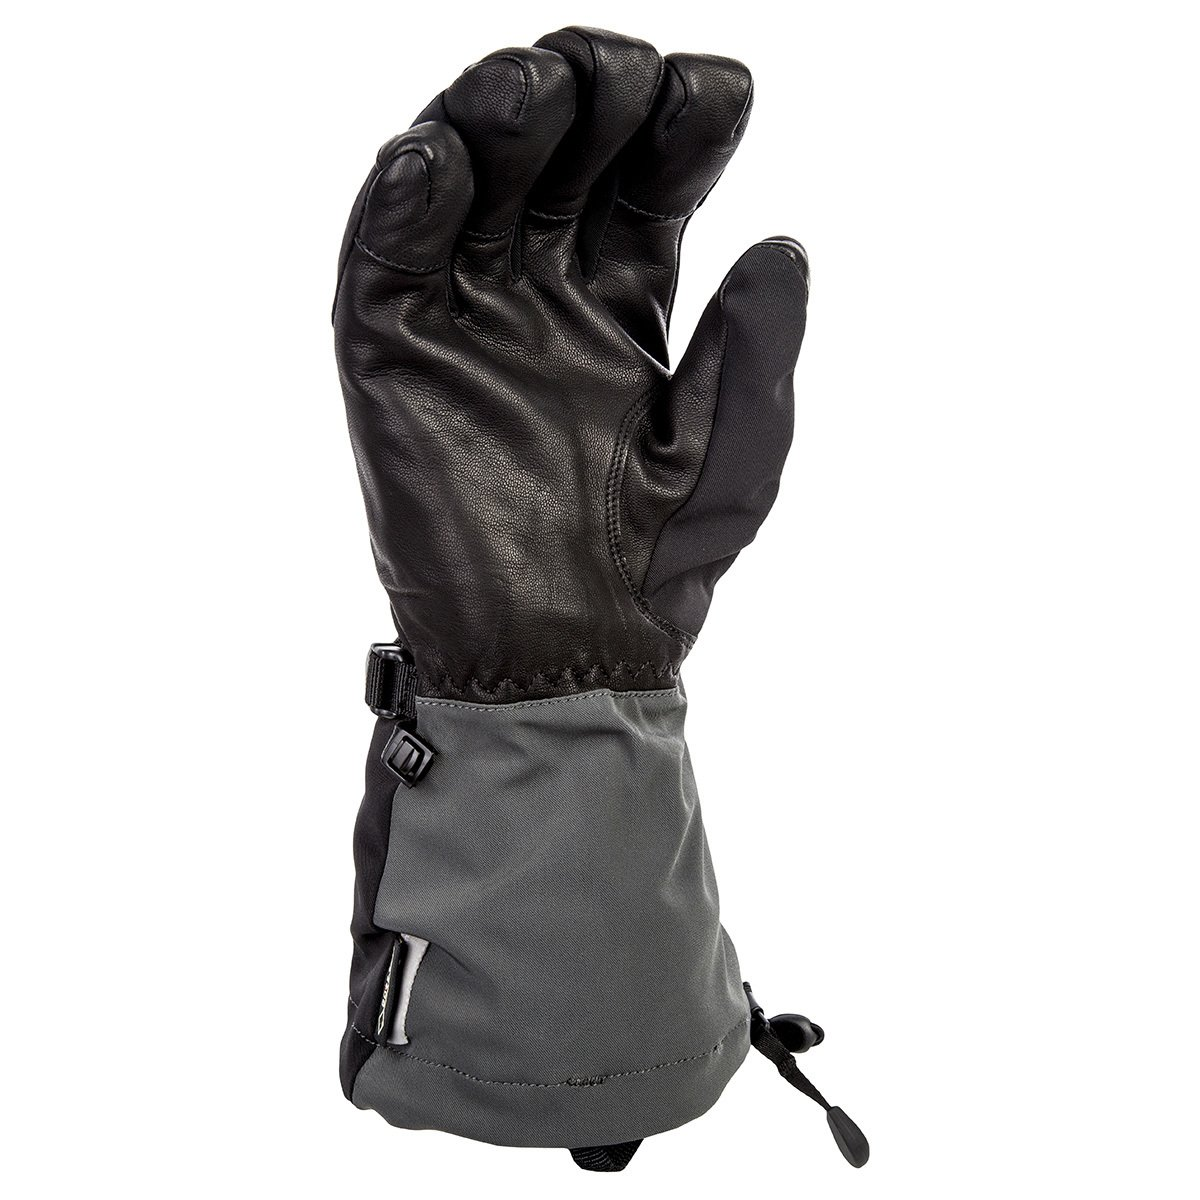 Klim Allure Women's Snowmobile Glove - Medium / Black